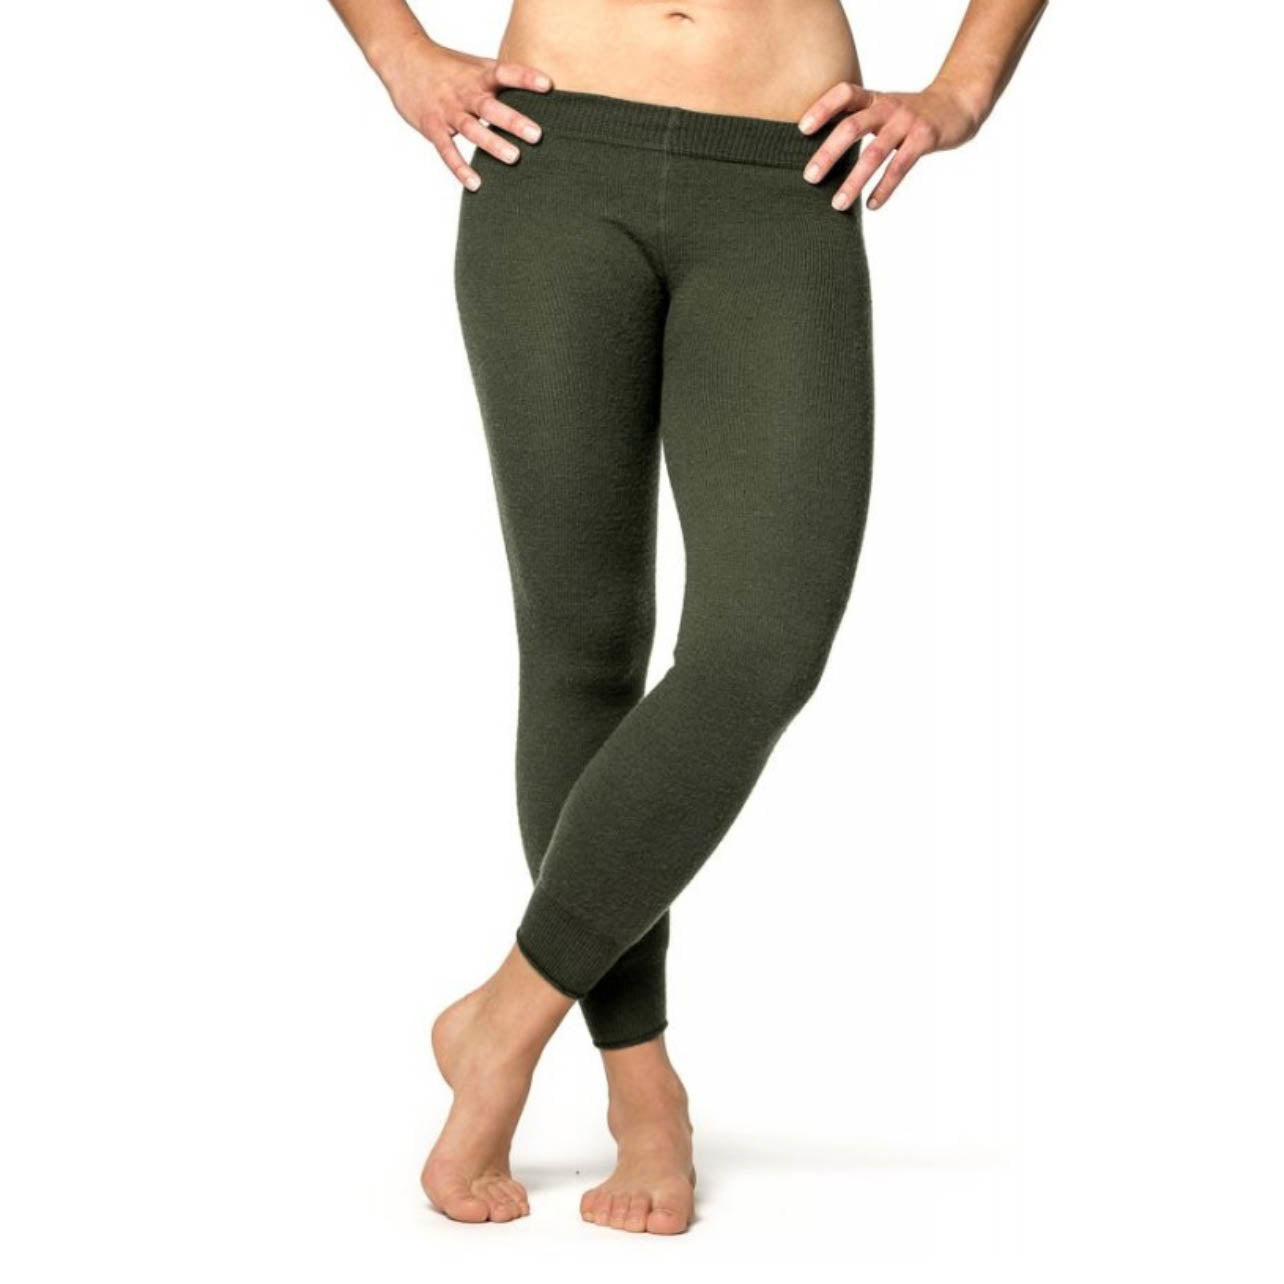 WOOLPOWER LONG JOHNS 400 – UNISEX – PINE GREEN